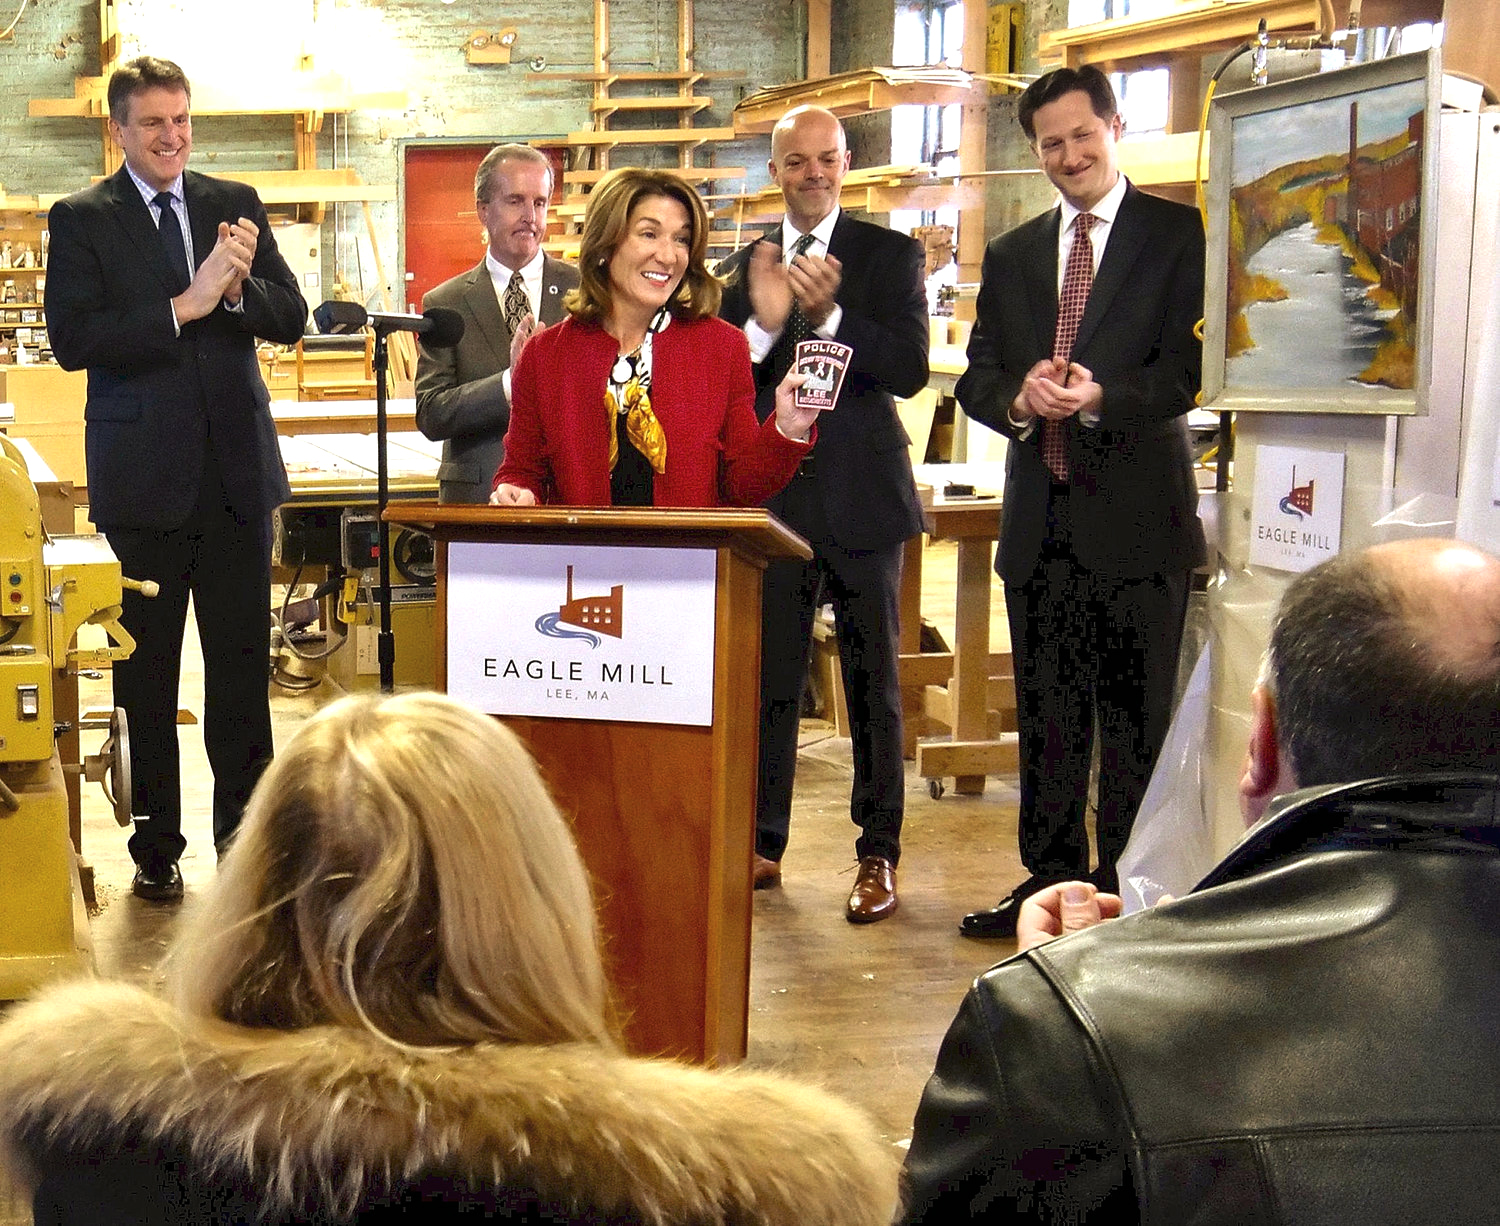 """Lt. Gov. Karyn Polito announces a $4.9 million MassWorks Infrastructure Program grant early Thursday at the Eagle Mill in Lee. Behind her, from left, are state Housing and Economic Development Secretary Jay Ash, state Rep. William """"Smitty"""" Pignatelli, D-Lenox, state Sen. Adam Hinds, D-Pittsfield, and Lee-Lenox Chief Administrative Officer Chris Ketchen."""